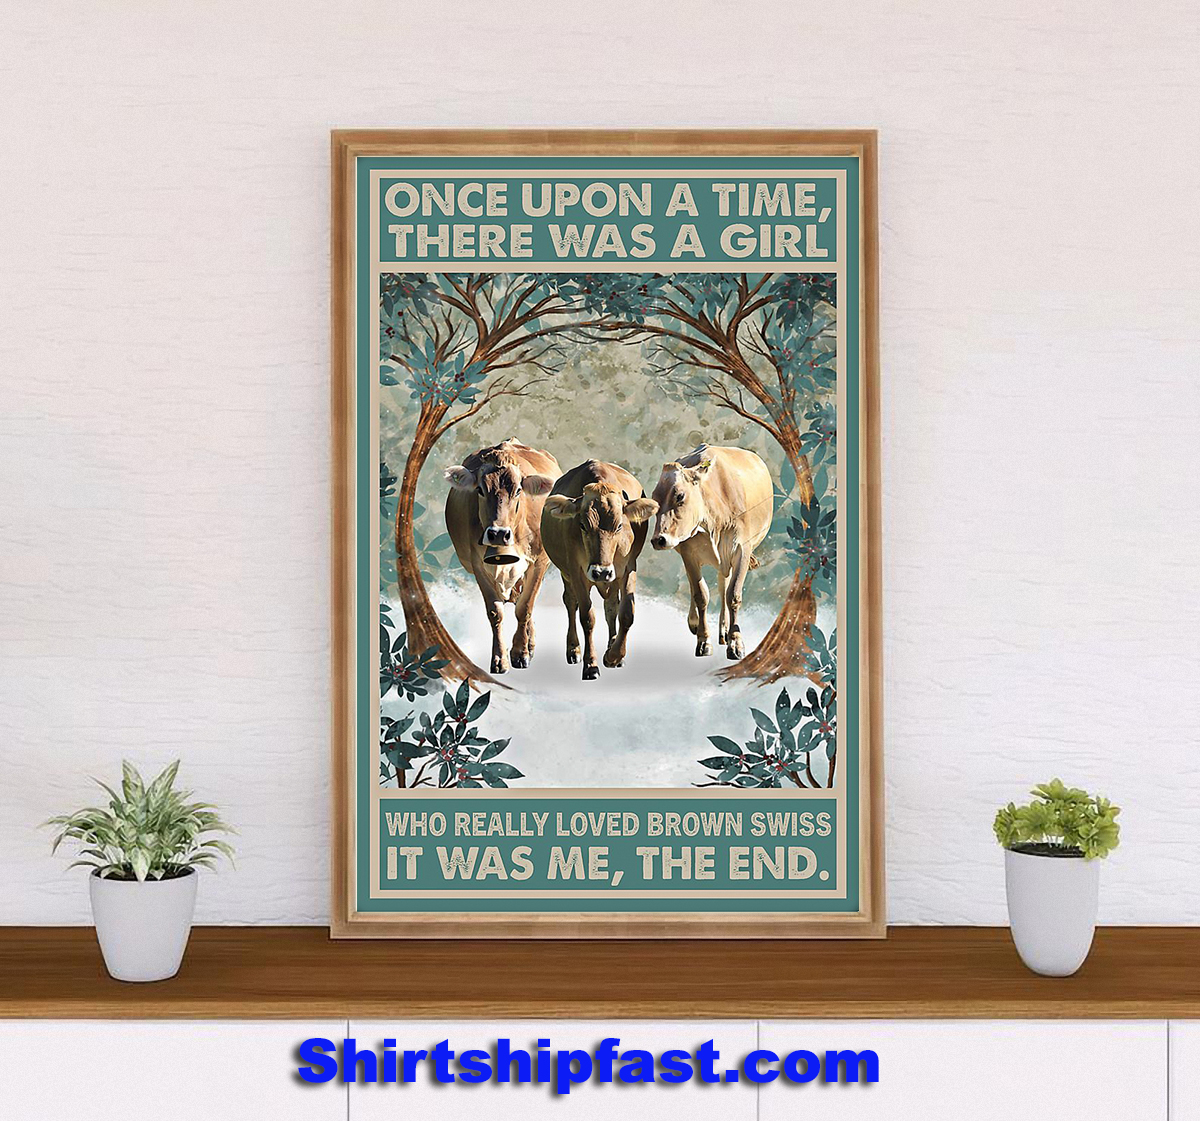 Once upon a time there was a girl who really loved brown swiss poster - Picture 2